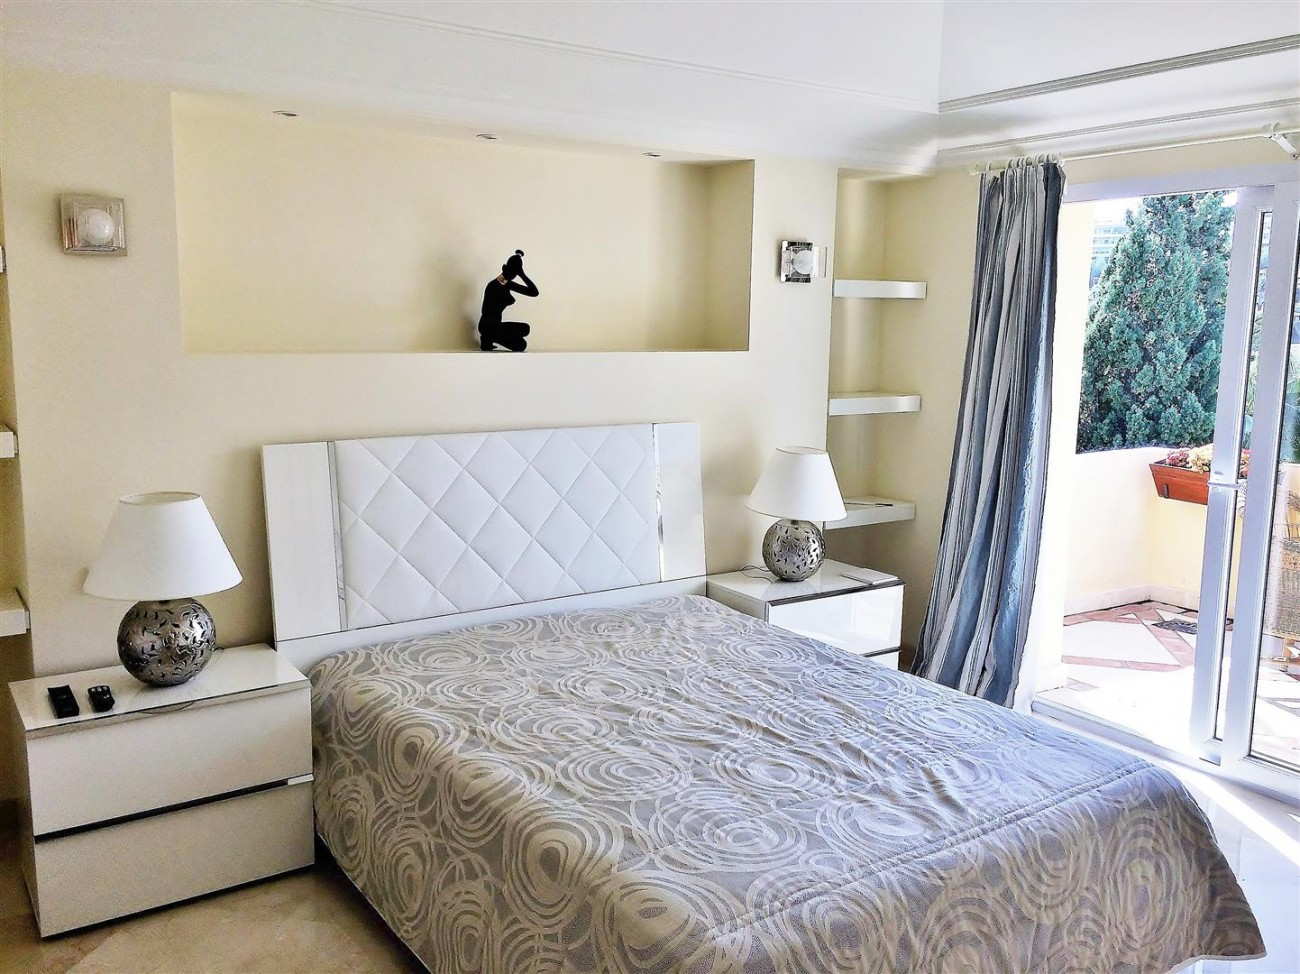 Penthouse for sale Las Alamandas Nueva Andalucia Marbella Spain (34) (Large)